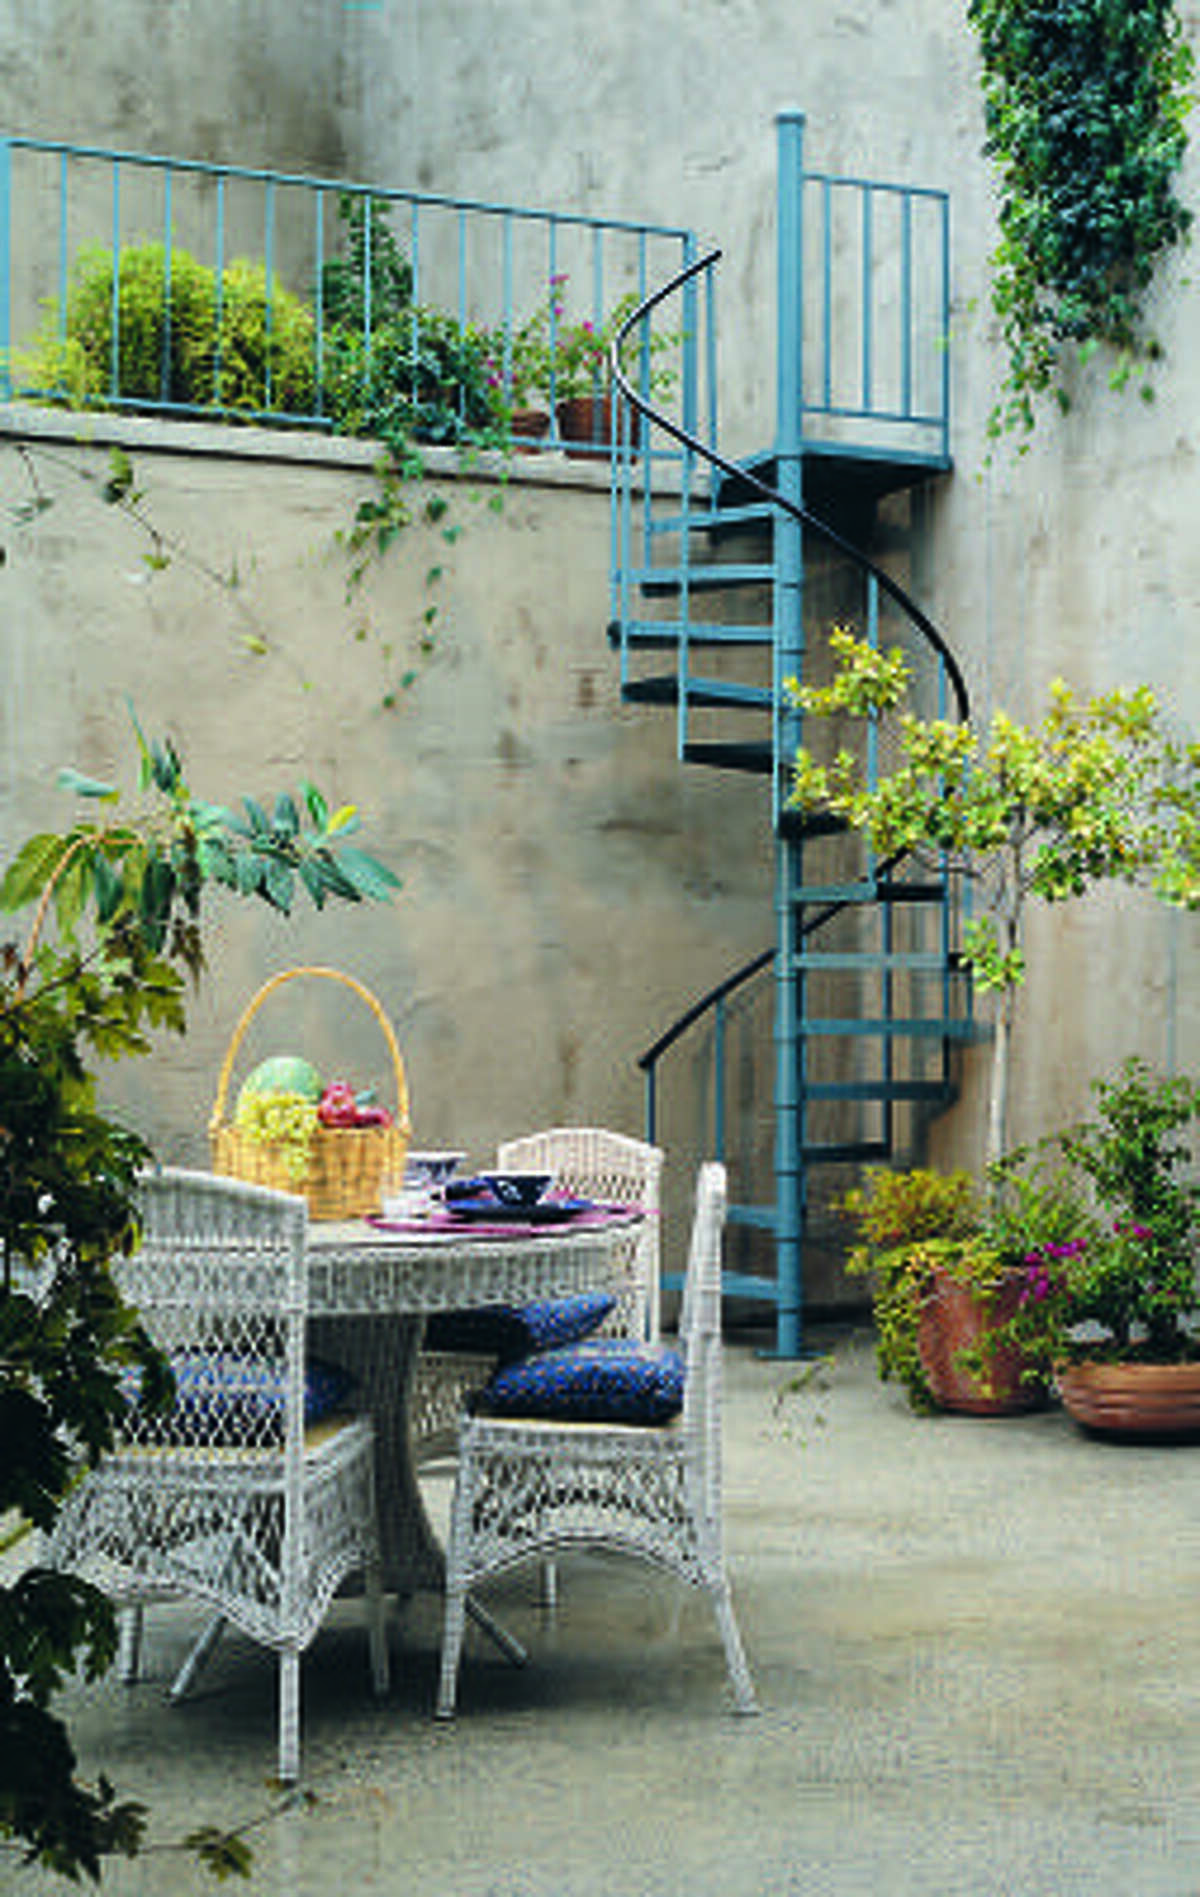 AHEAD OF THE CURVE: A spiral staircase like this one from the Iron Shop can open your garden up to another level.